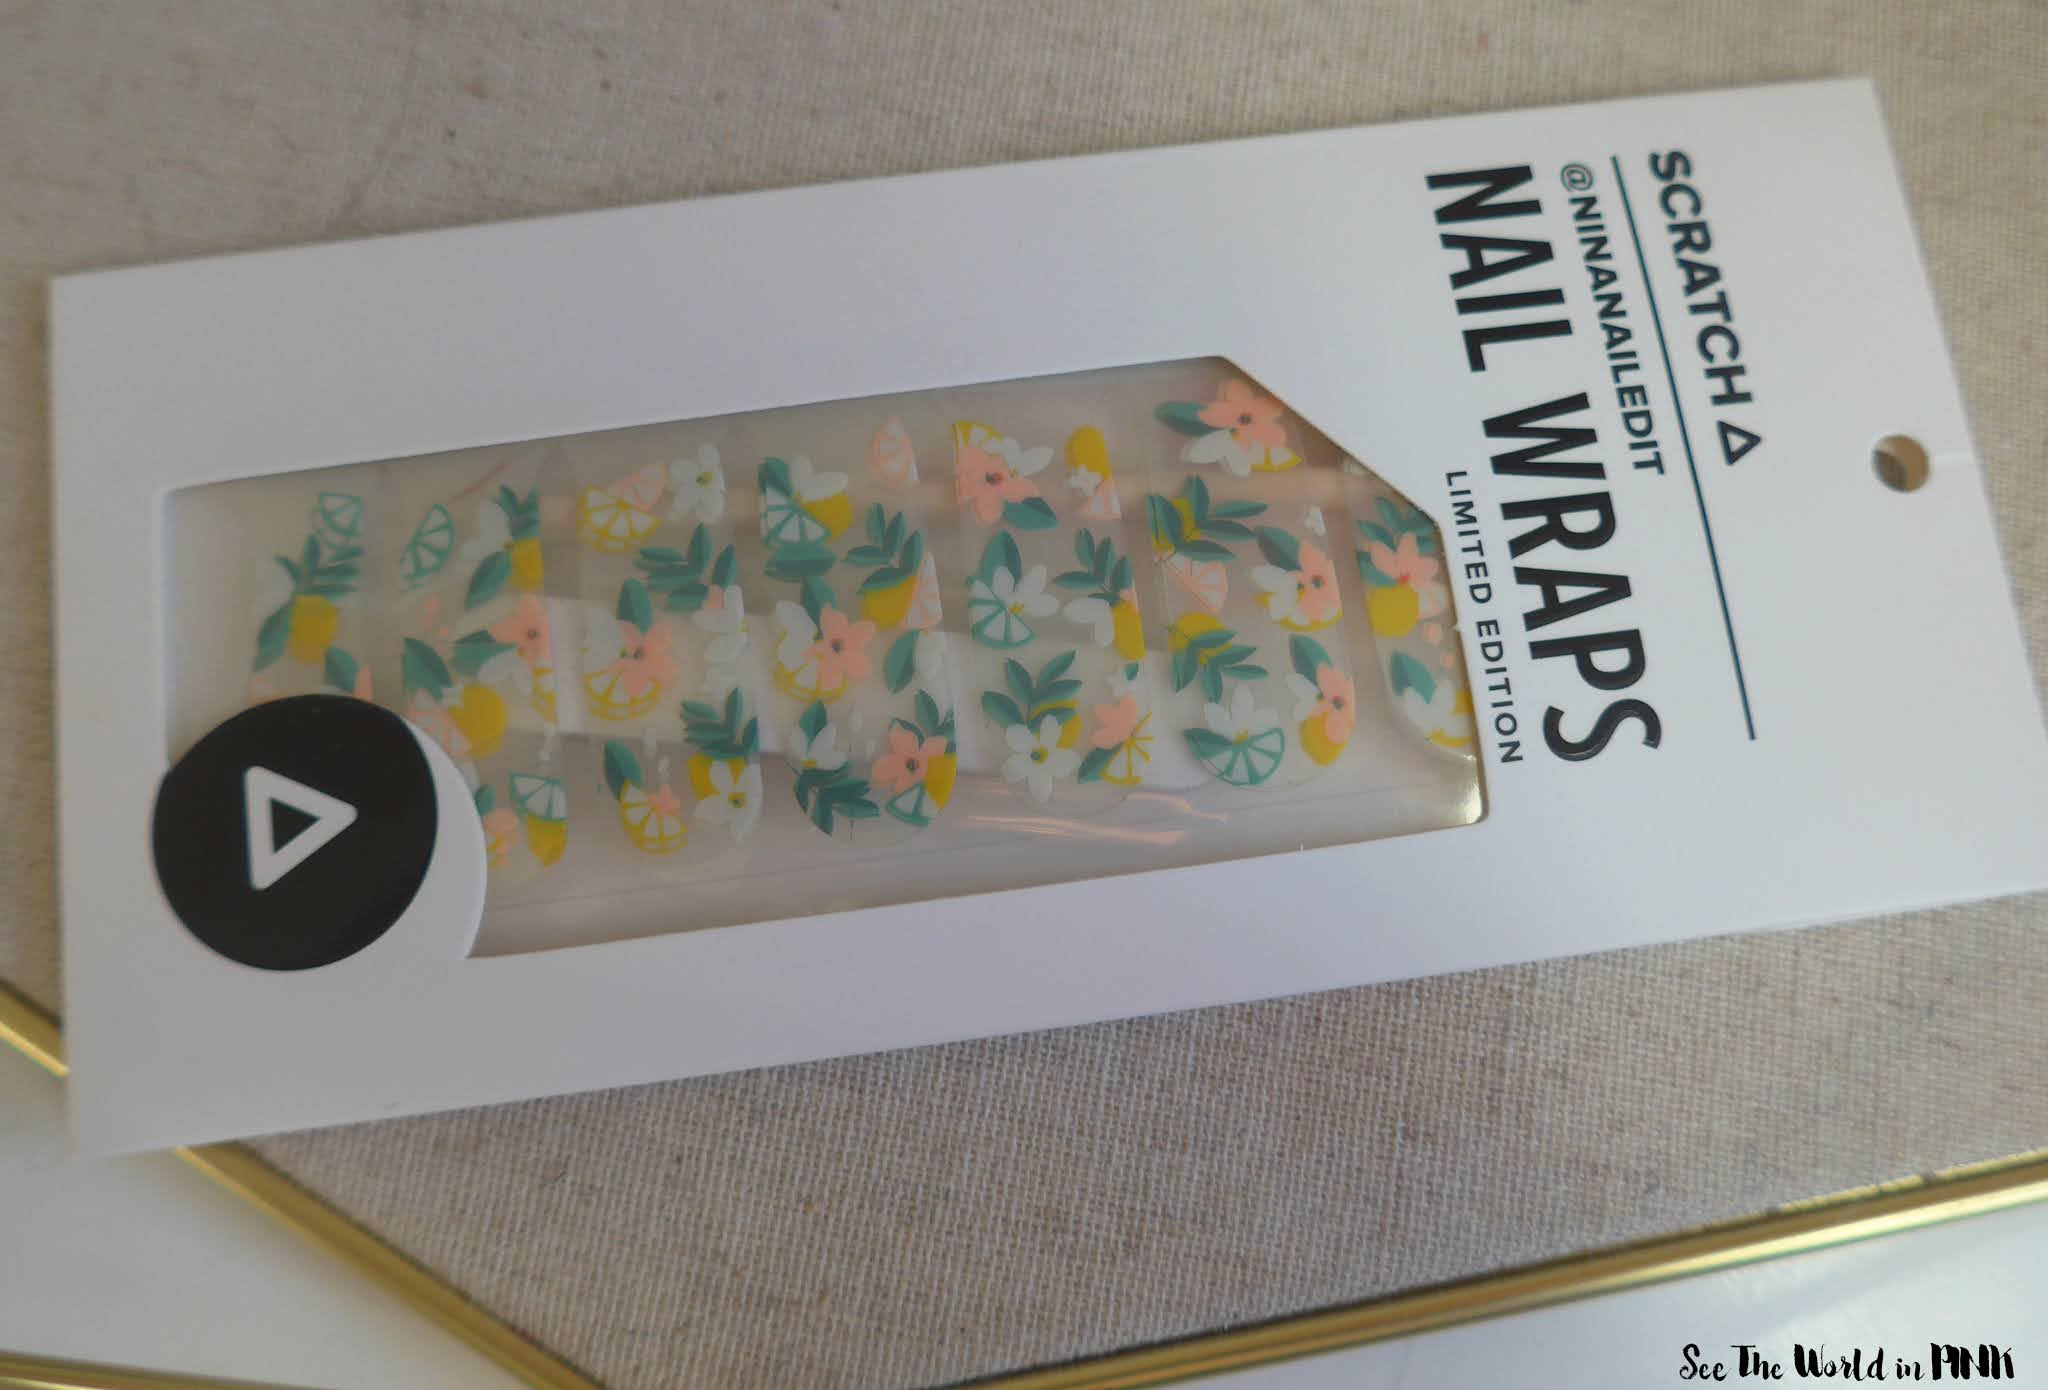 Manicure Monday - Scratch Citrus Blossom Wraps and July 2020 Monthly Mani Kit